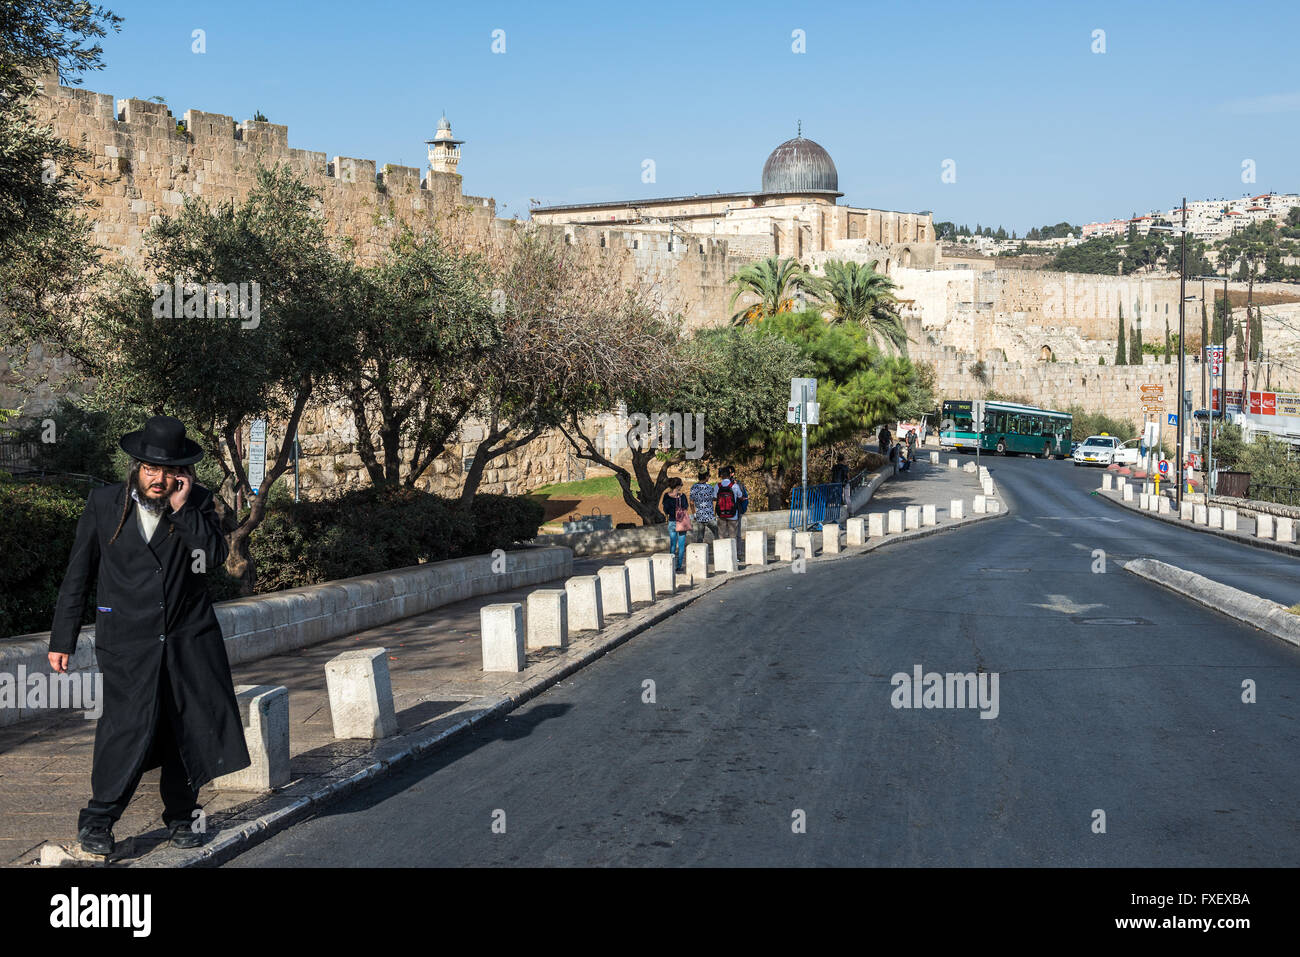 Orthodox Jew on Ma'ale HaShalom street called Pope's Road in Jerusalem, Israel. Al-Aqsa Mosque on background - Stock Image